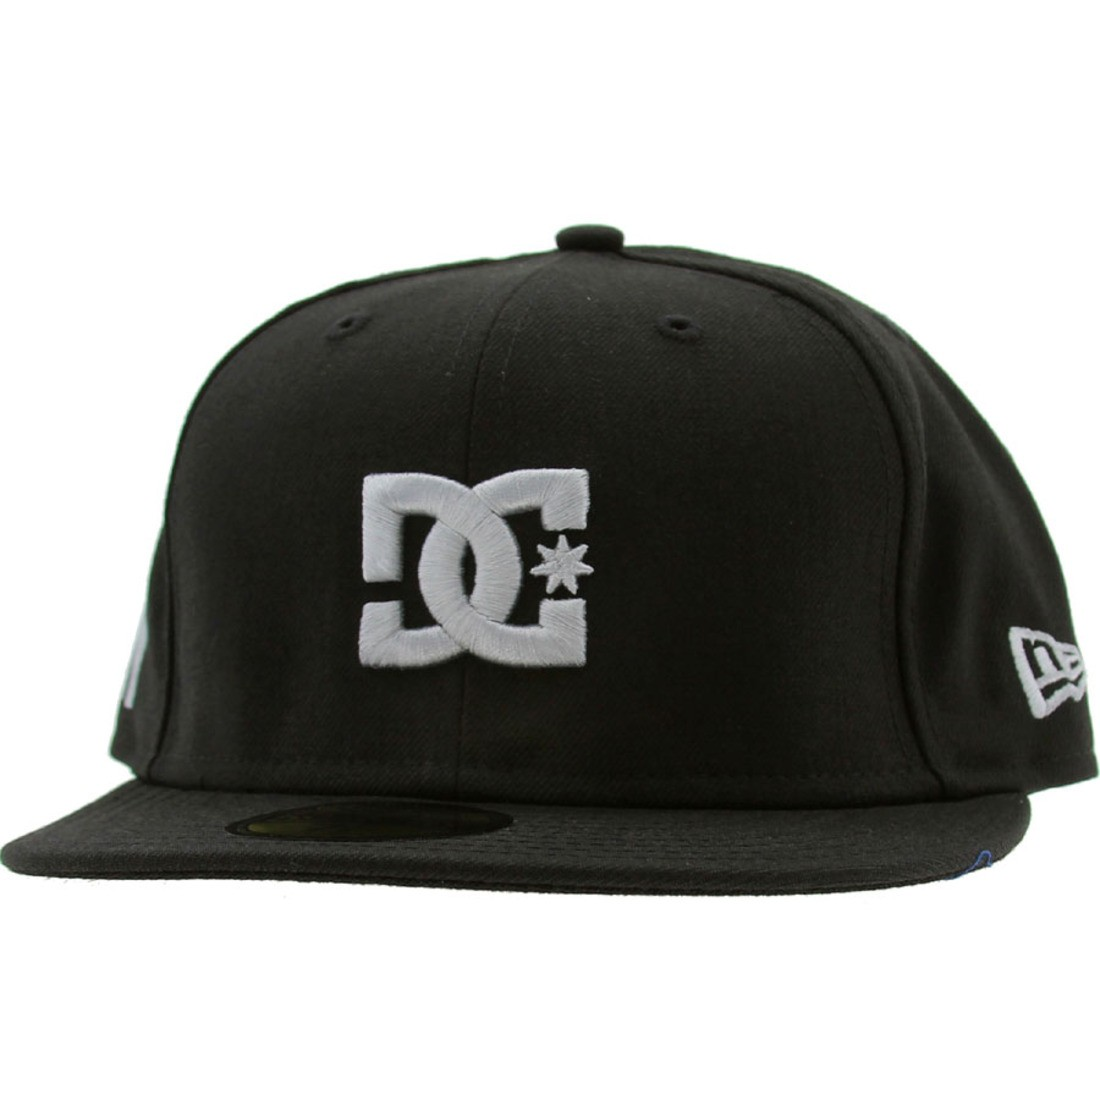 DC The Streets New Era Fitted Cap - New York (black) 96a85267cbf